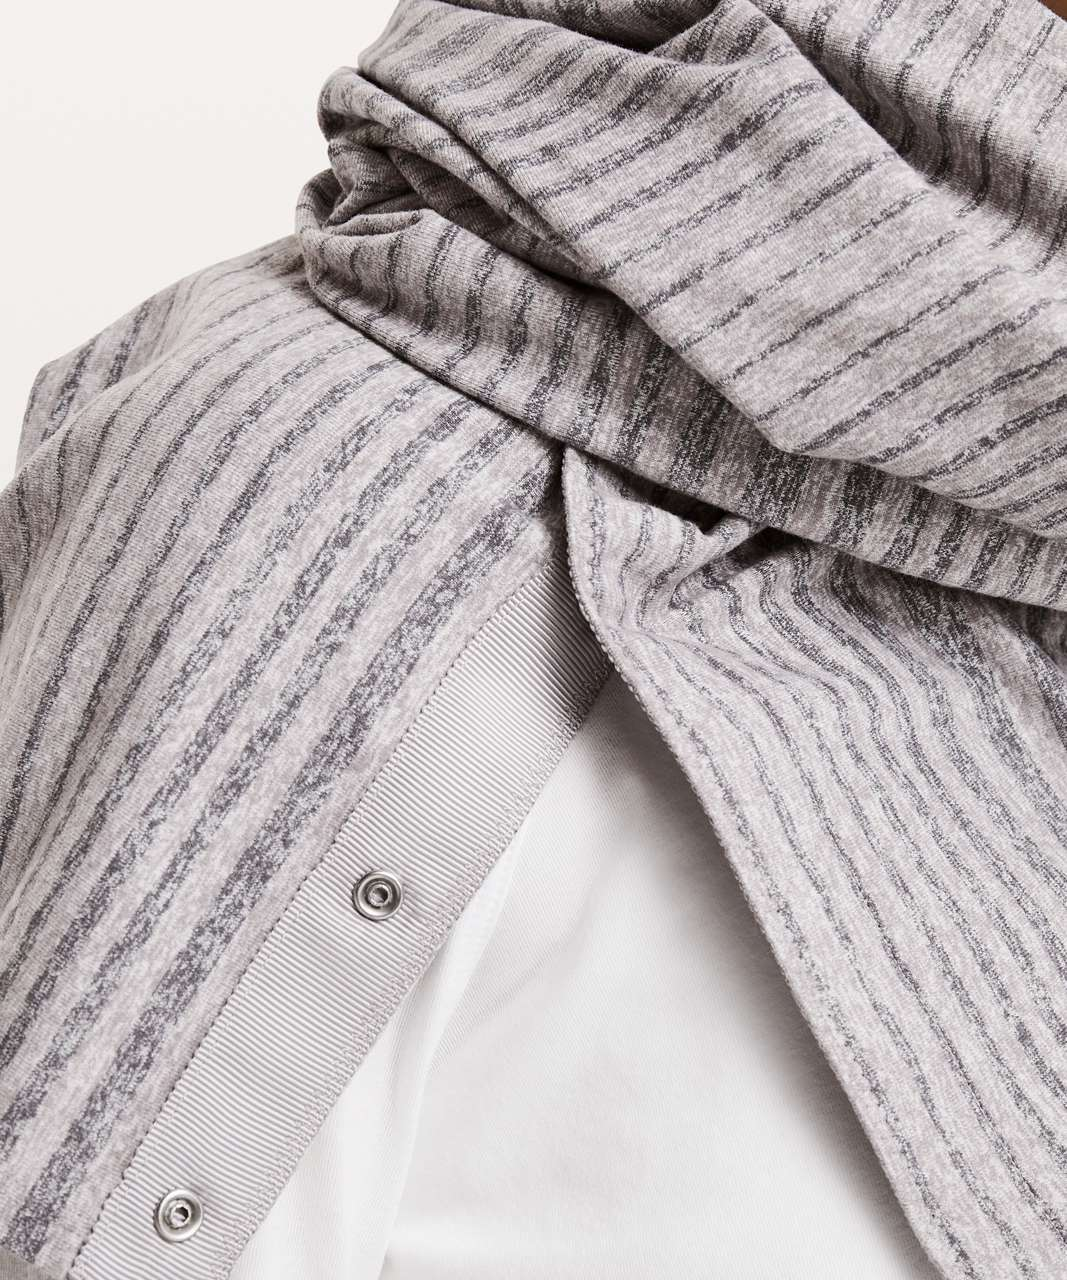 Lululemon Vinyasa Scarf *Rulu - Mini Akido Stripe Heathered Dark Chrome Heathered Titanium